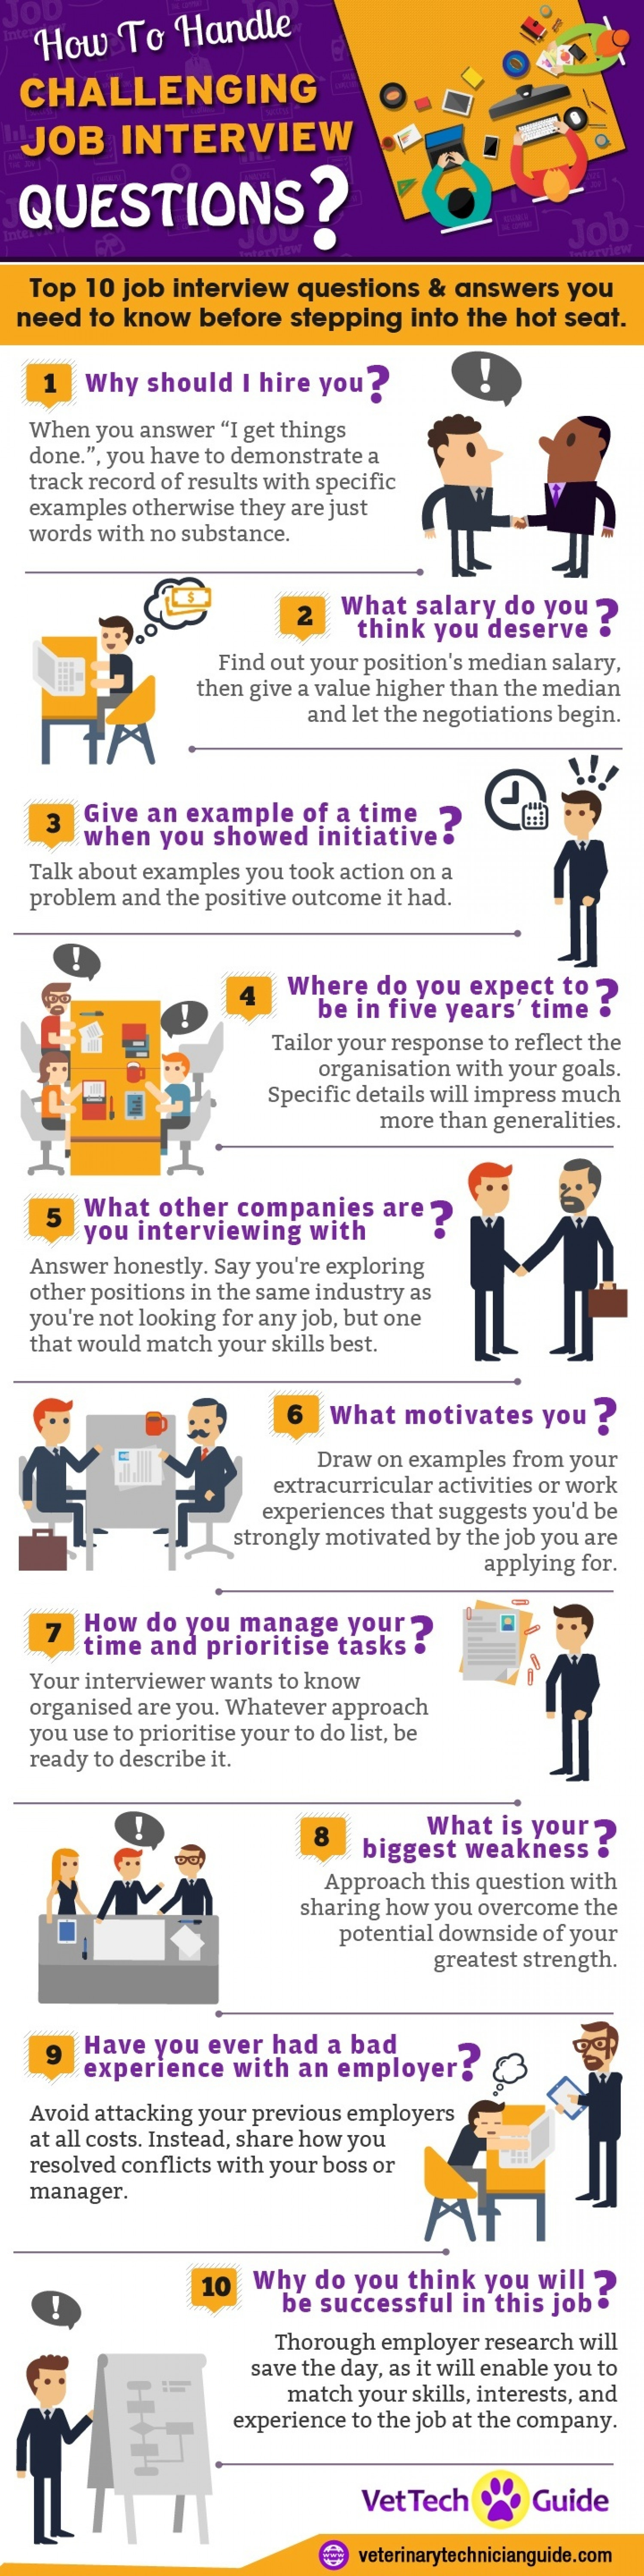 how to handle challenging job interview questions ly how to handle challenging job interview questions infographic